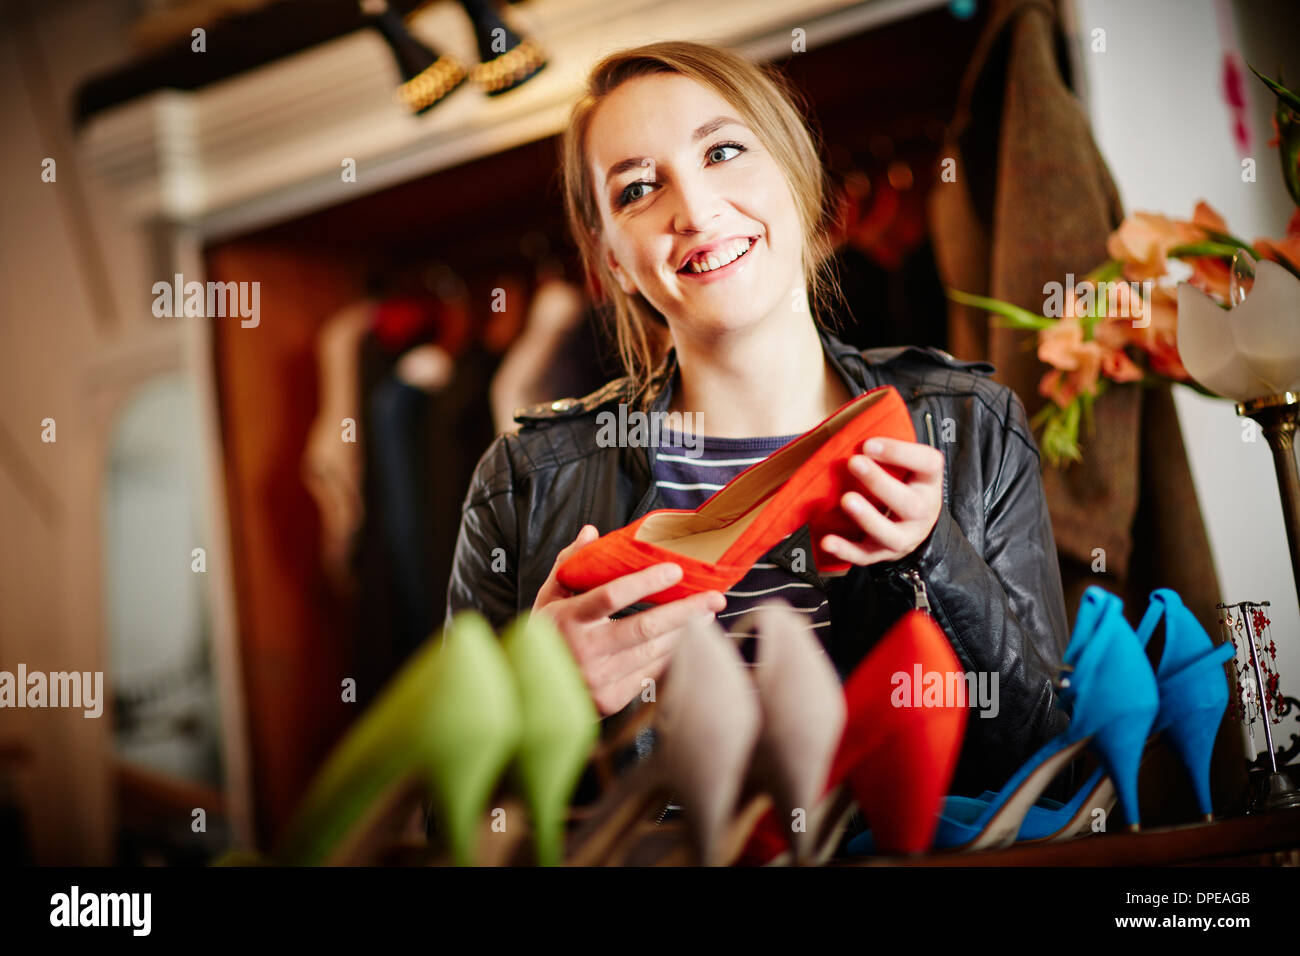 Young woman looking at selection of high heeled shoes - Stock Image